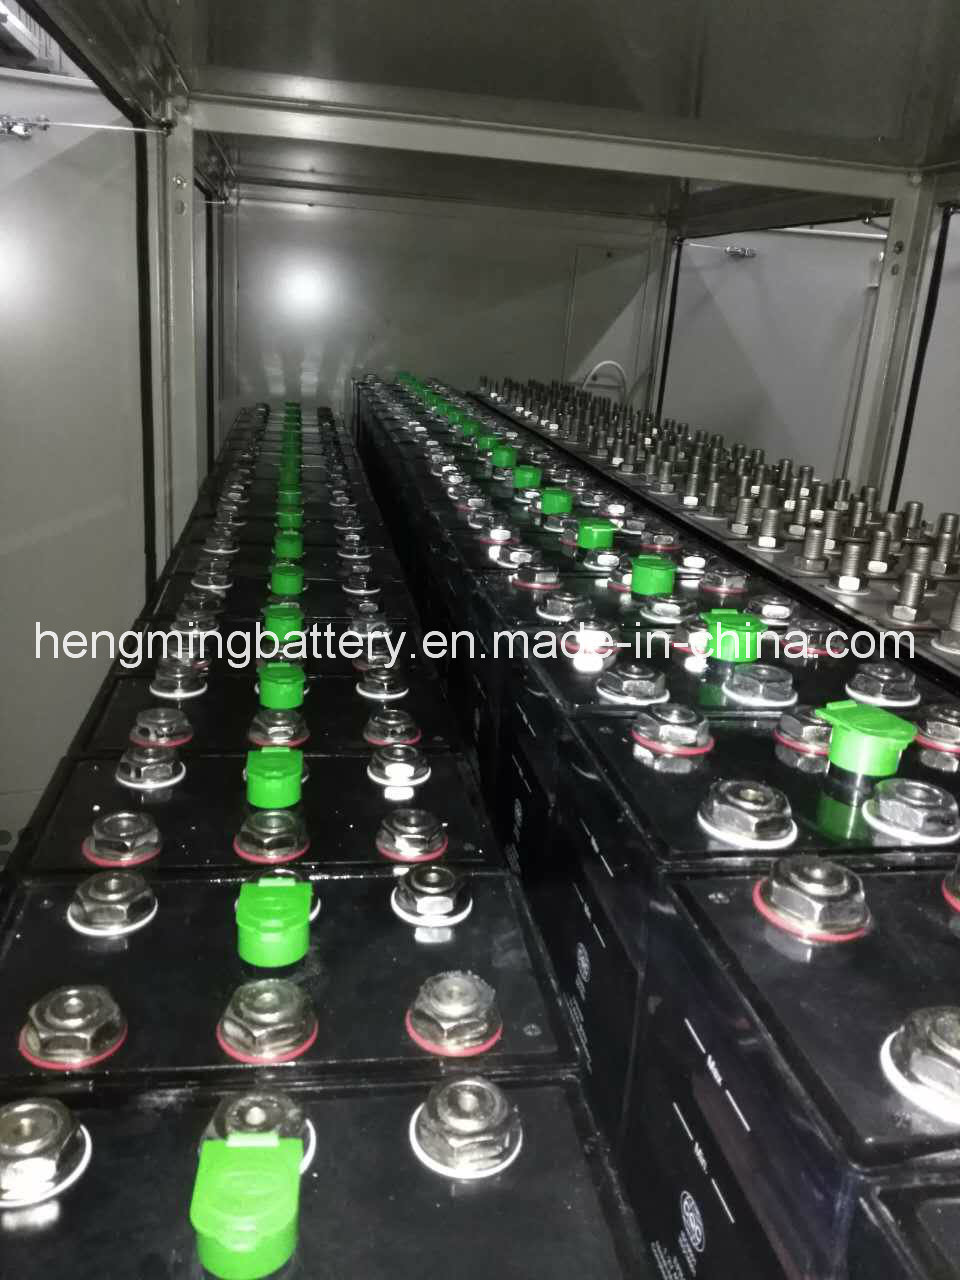 1.2V 400ah Qng400ah-ABS Container Ni-MH Battery/Packet Battery/Nickel-Metal Hydride Battery / Battery/for 12-380V System Green Power Only Manufacturer in China